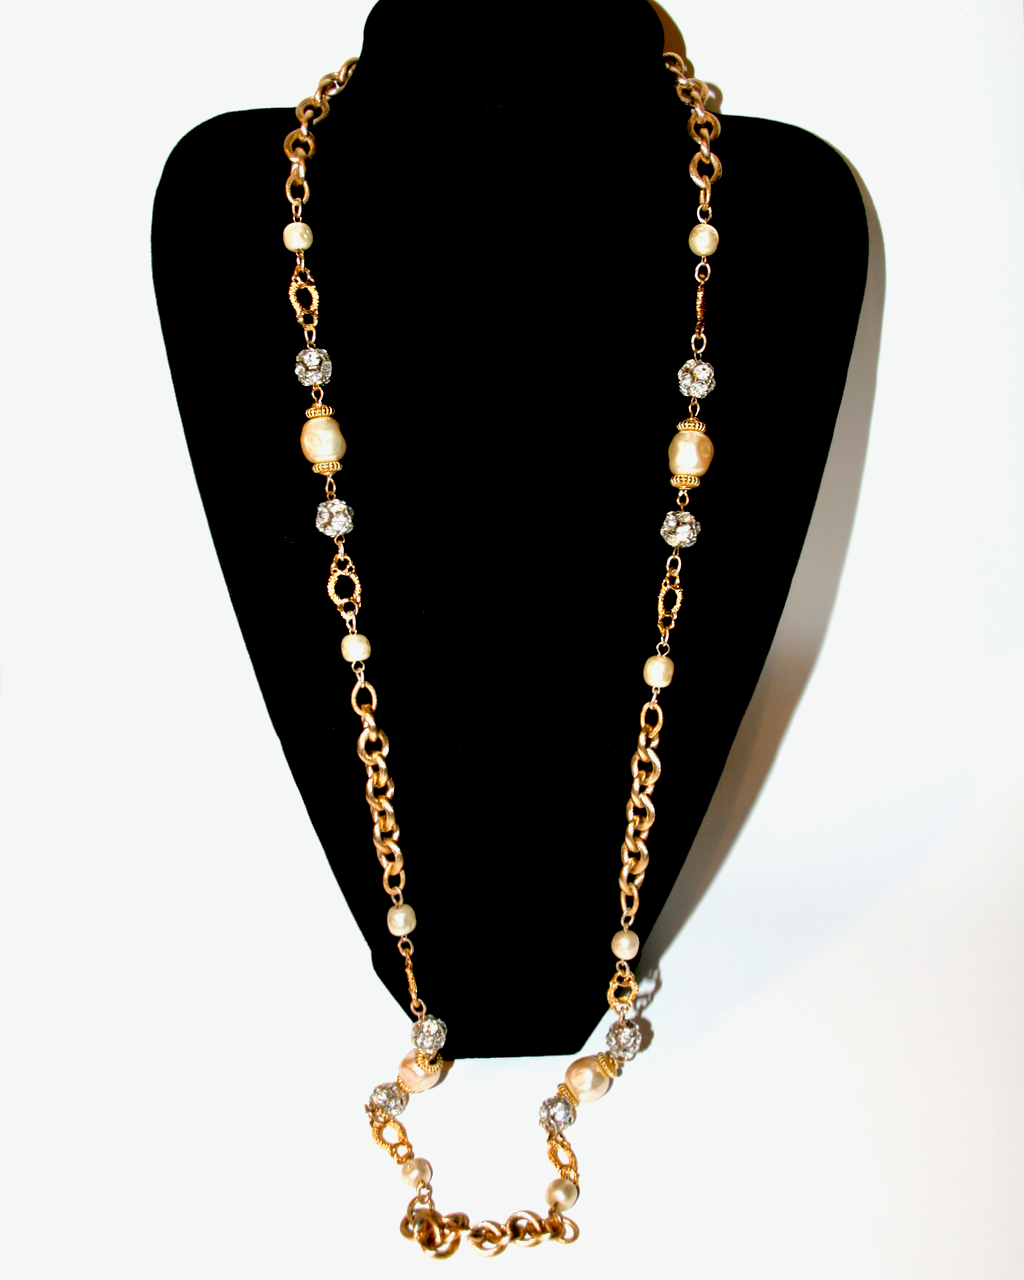 1980-90's LAWRENCE VRBA gold, baroque pearl and rhintestone ball long necklace